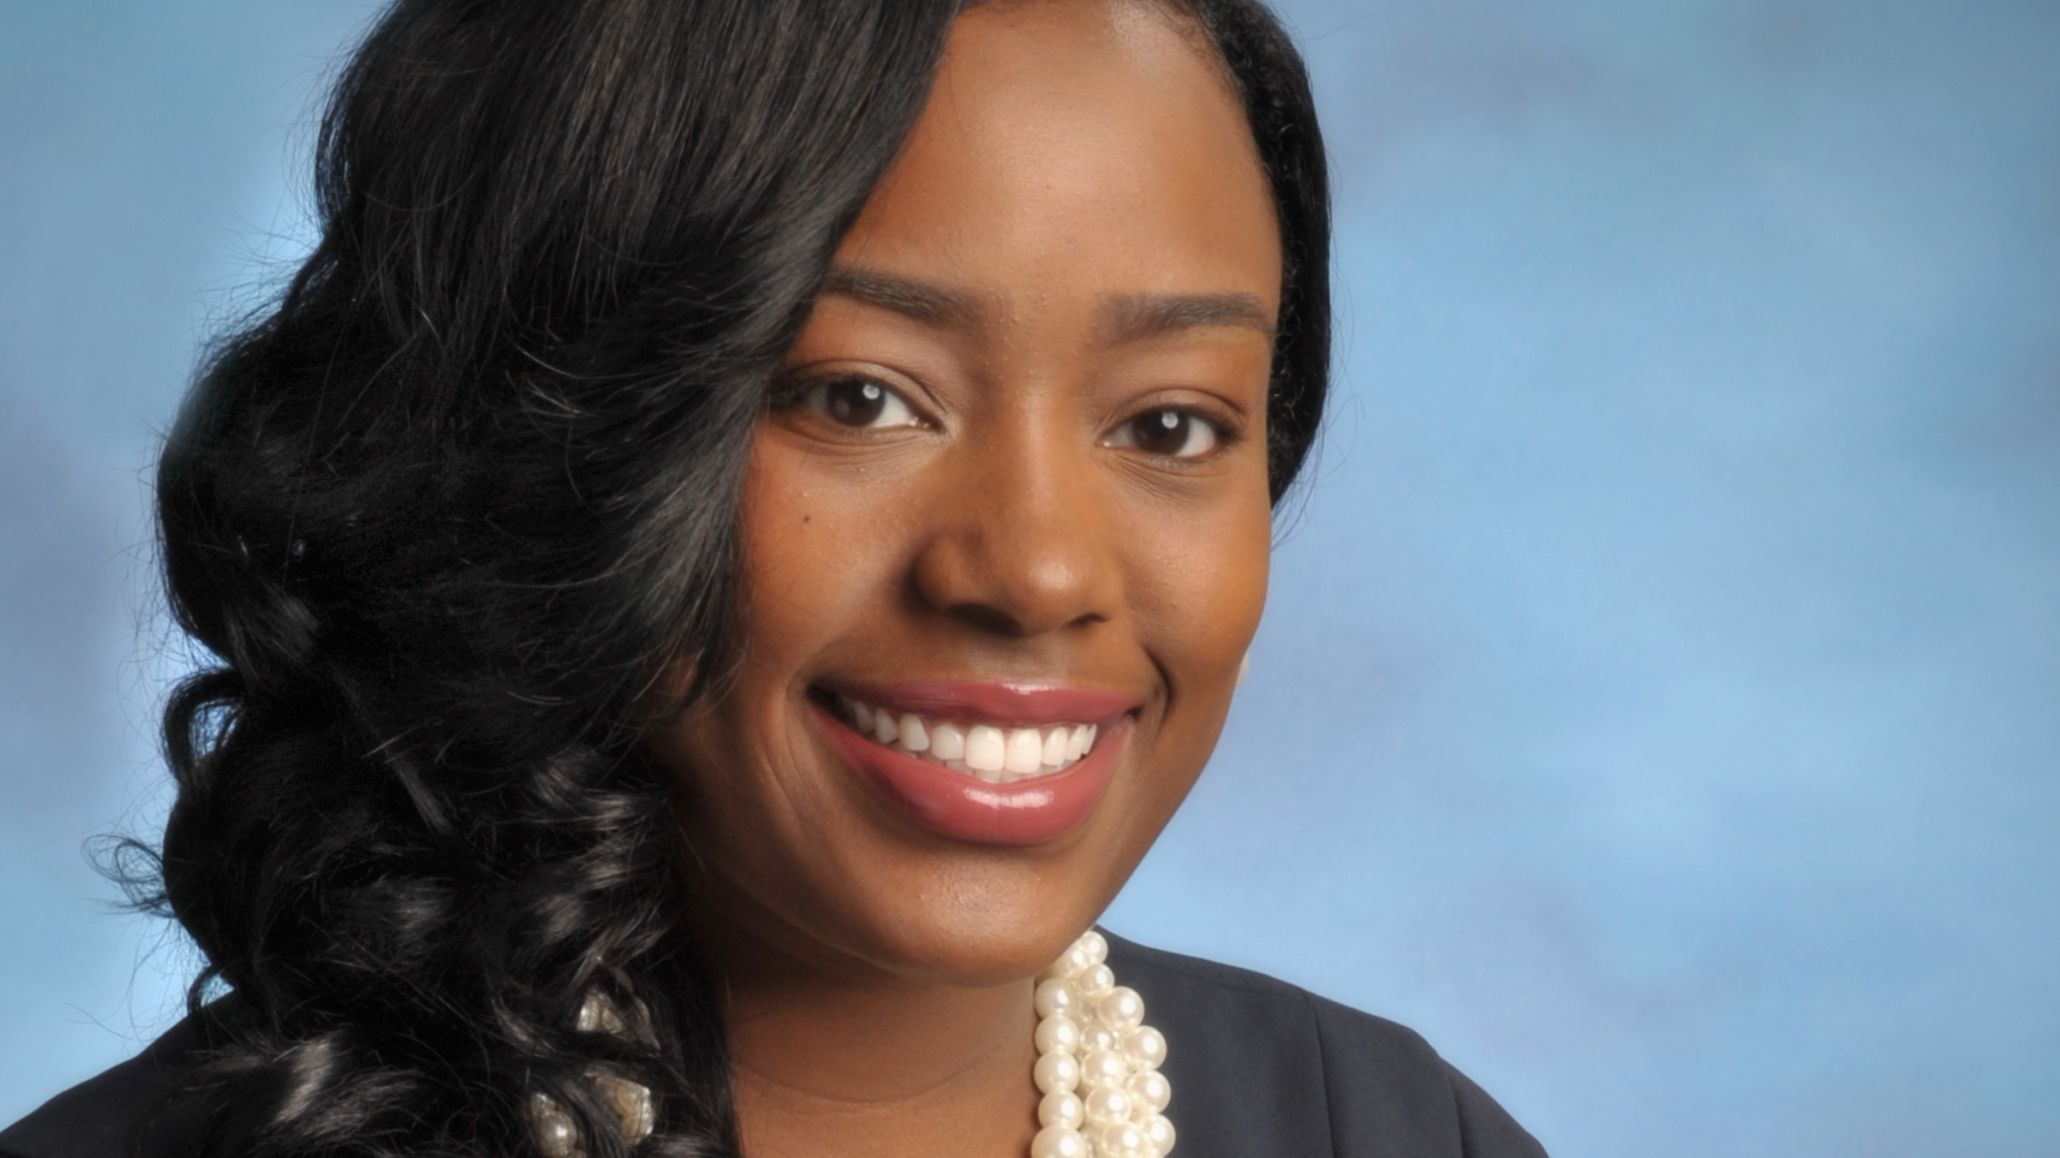 Kershaw County School District welcomes home Warren-Barber as new principal of Bethune Elementary School